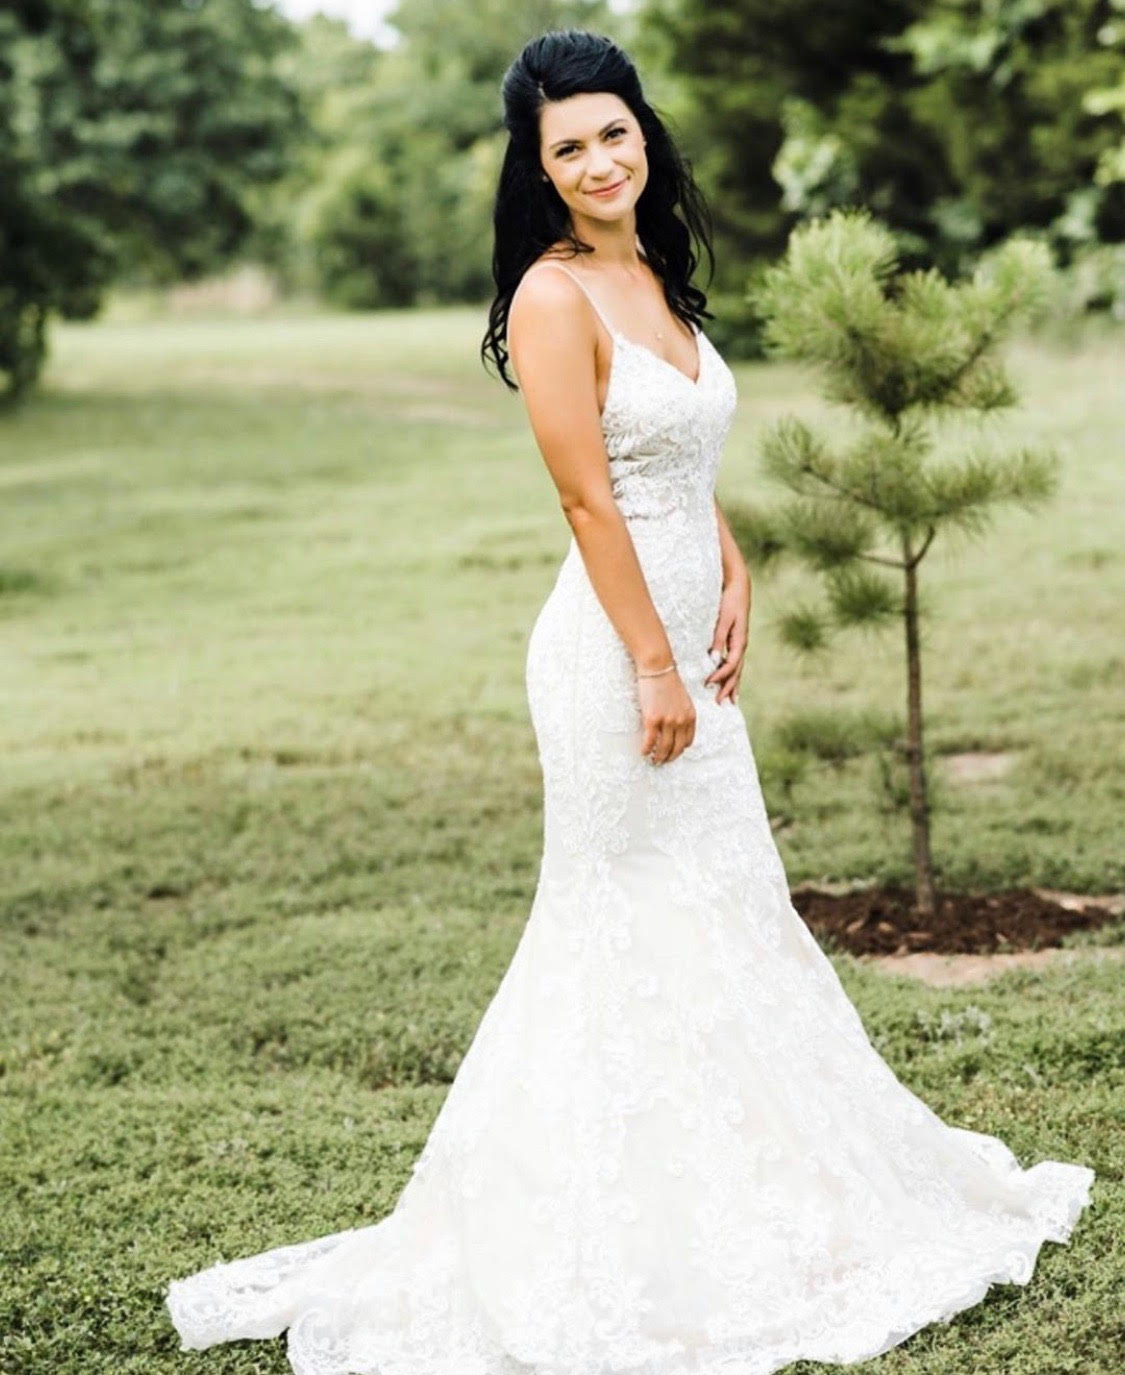 Alexus // June 2019 //  Venus Nickell Photography  //  The Pines at Moser Farms